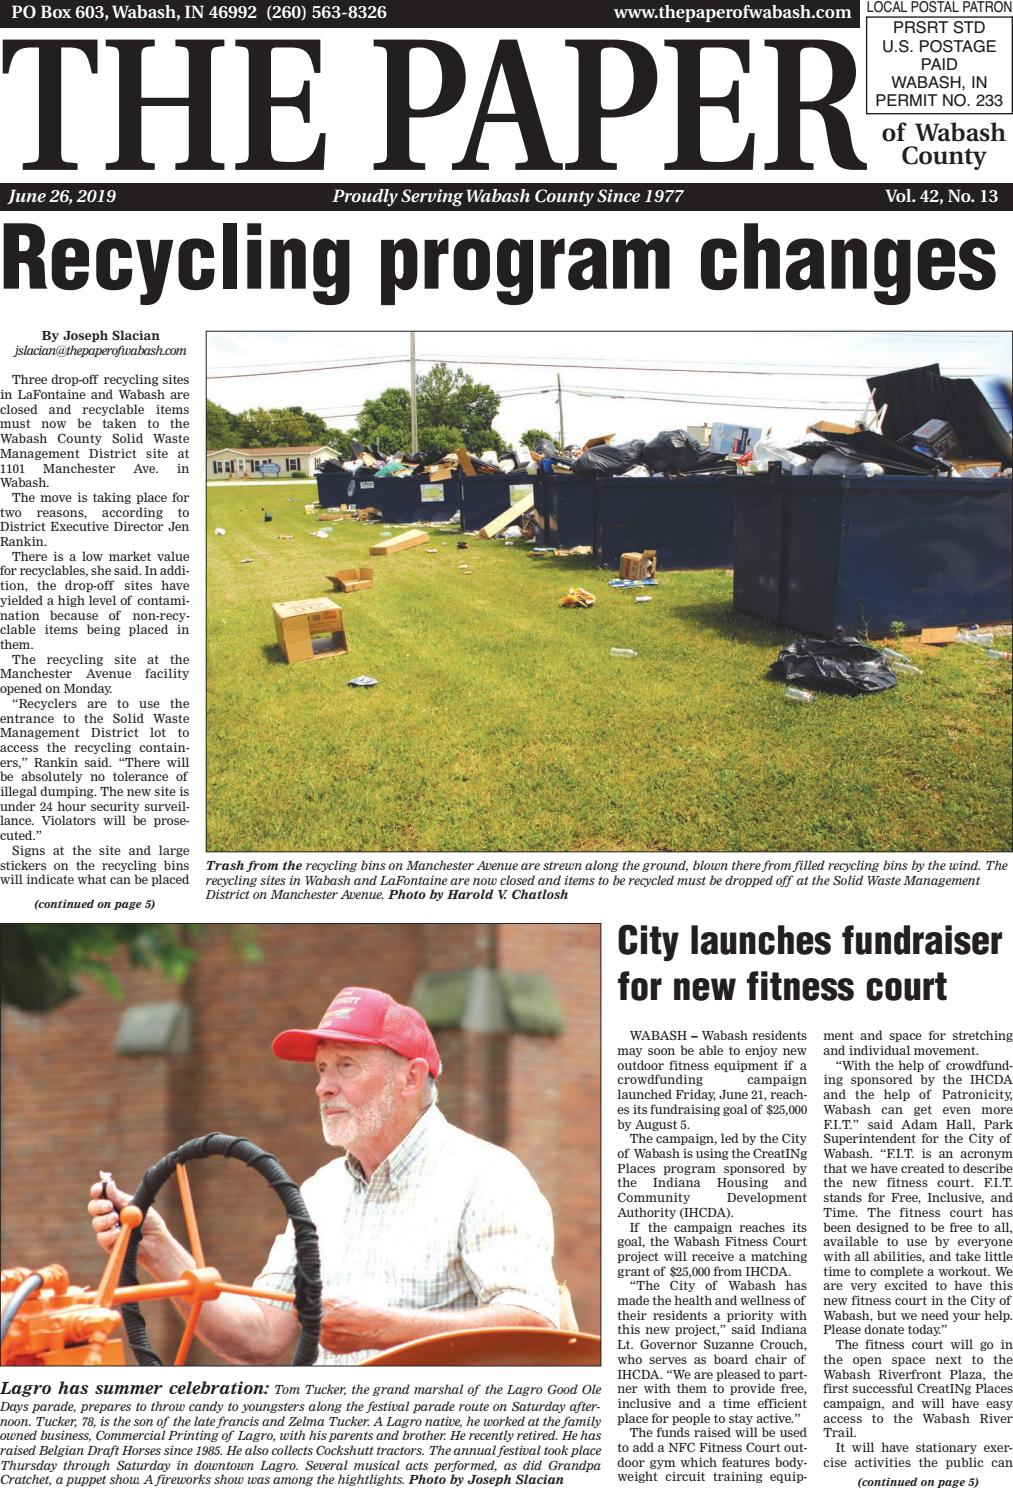 The Paper of Wabash - June 26, 2019 issue by The Paper of